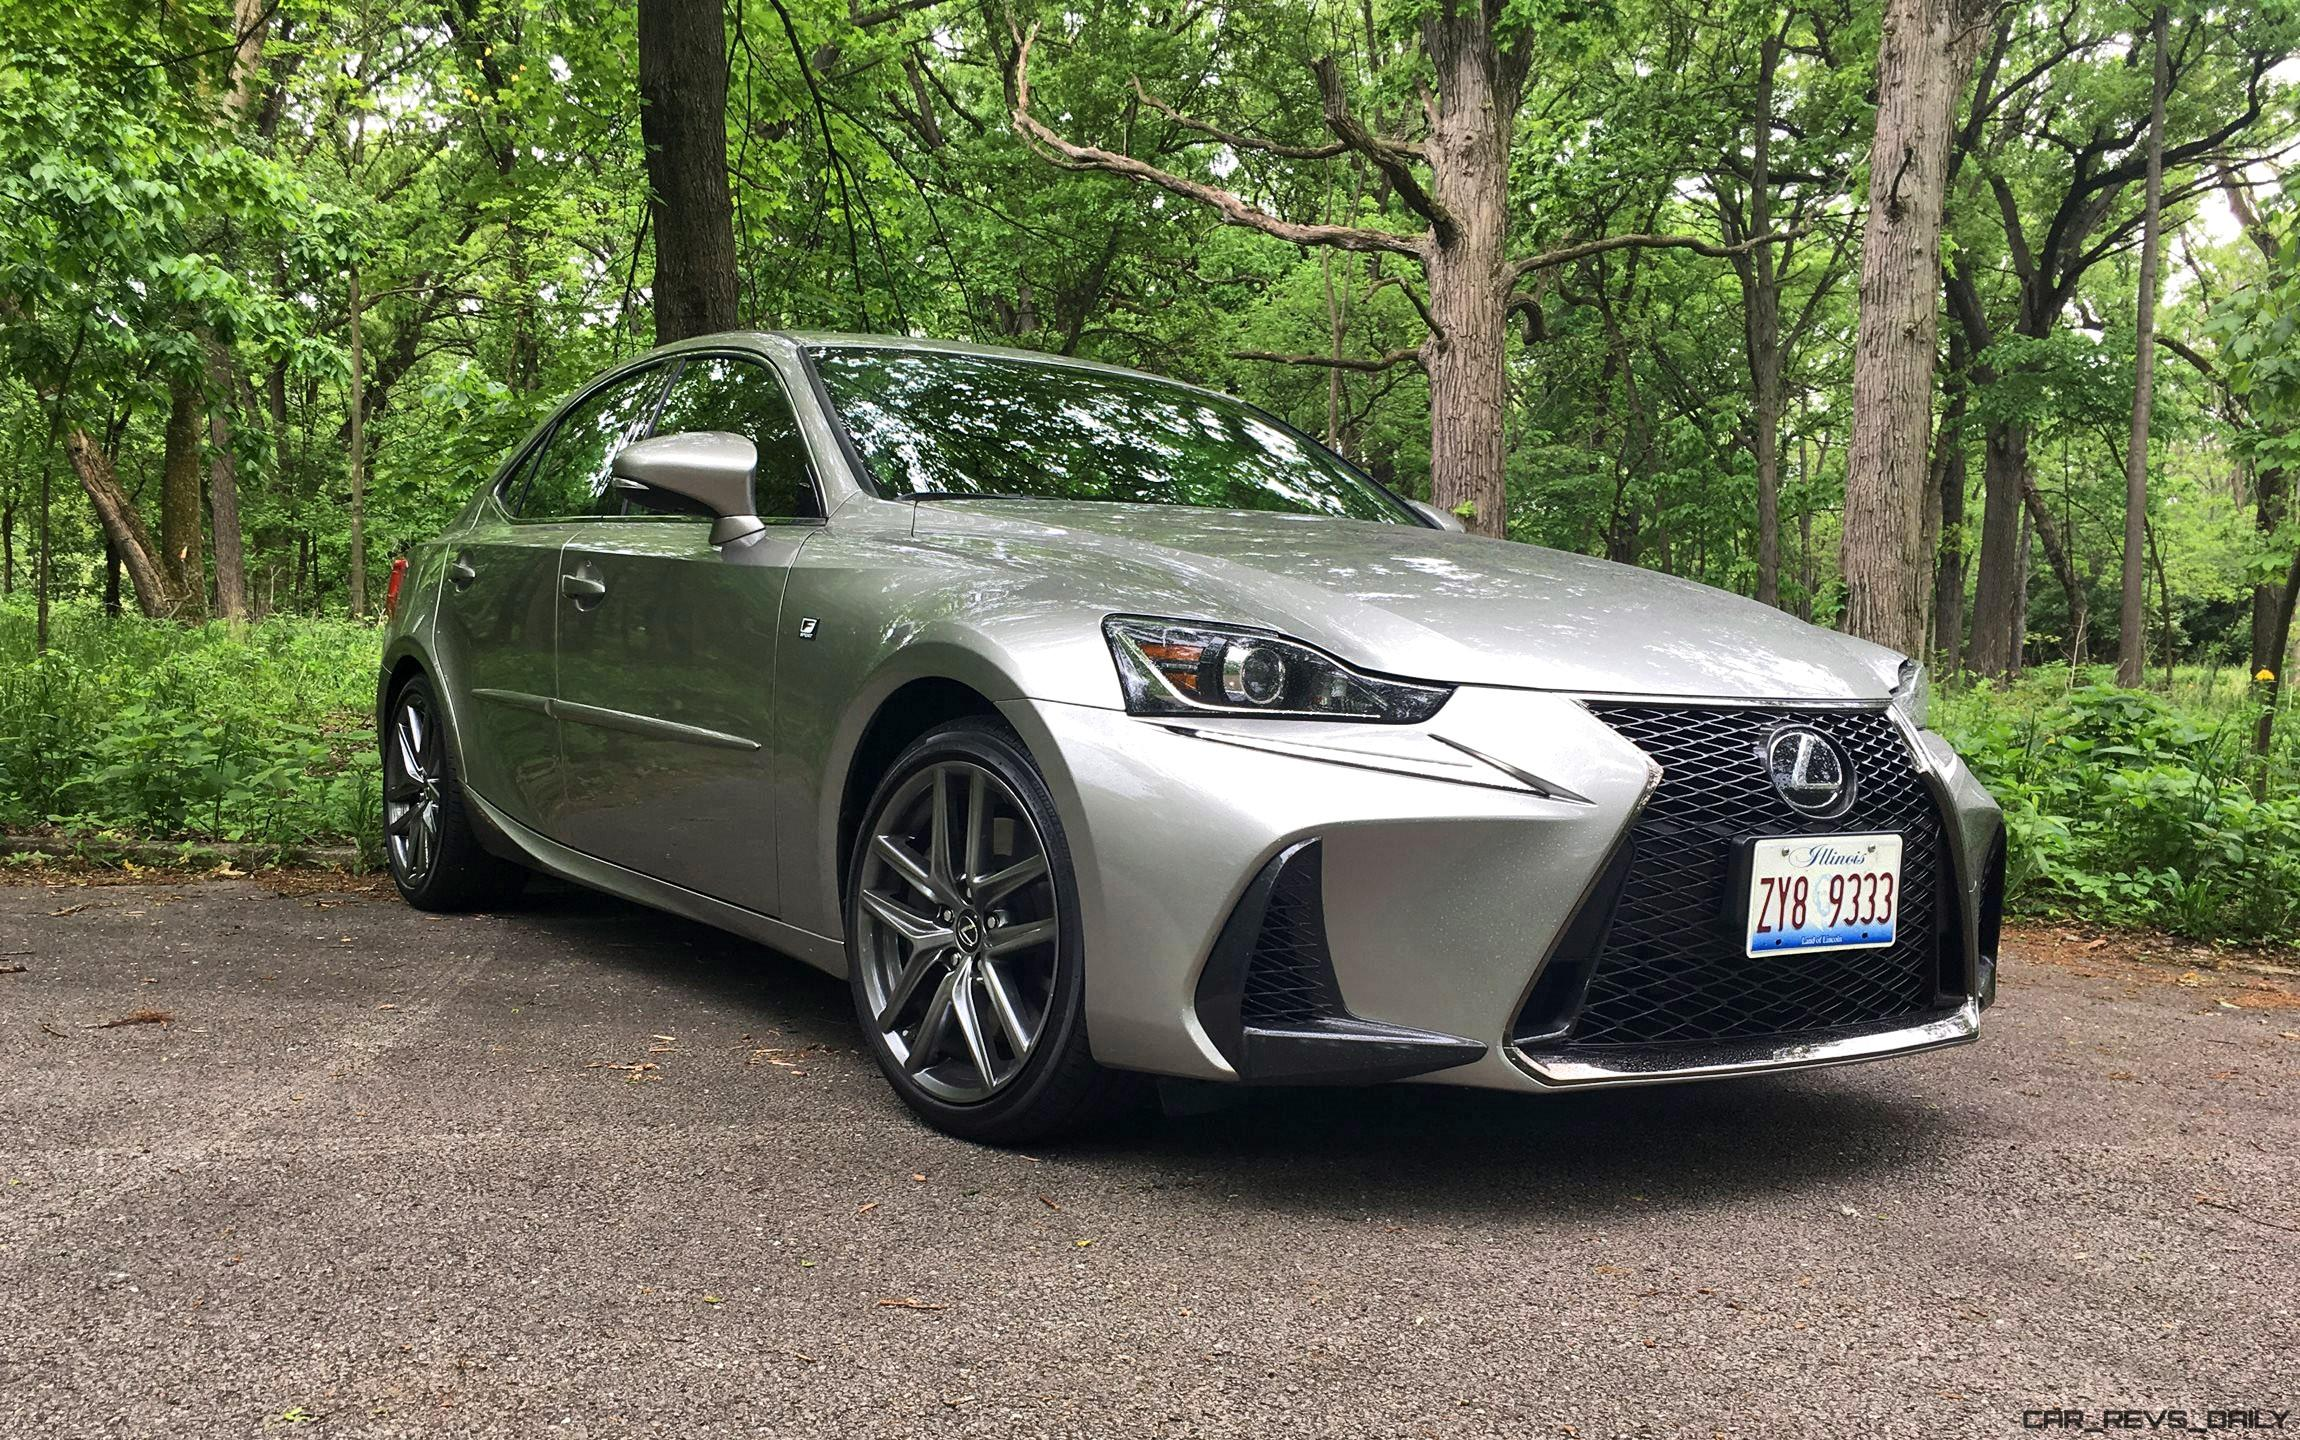 2017 lexus is350 f sport rwd road test review performance drive video. Black Bedroom Furniture Sets. Home Design Ideas